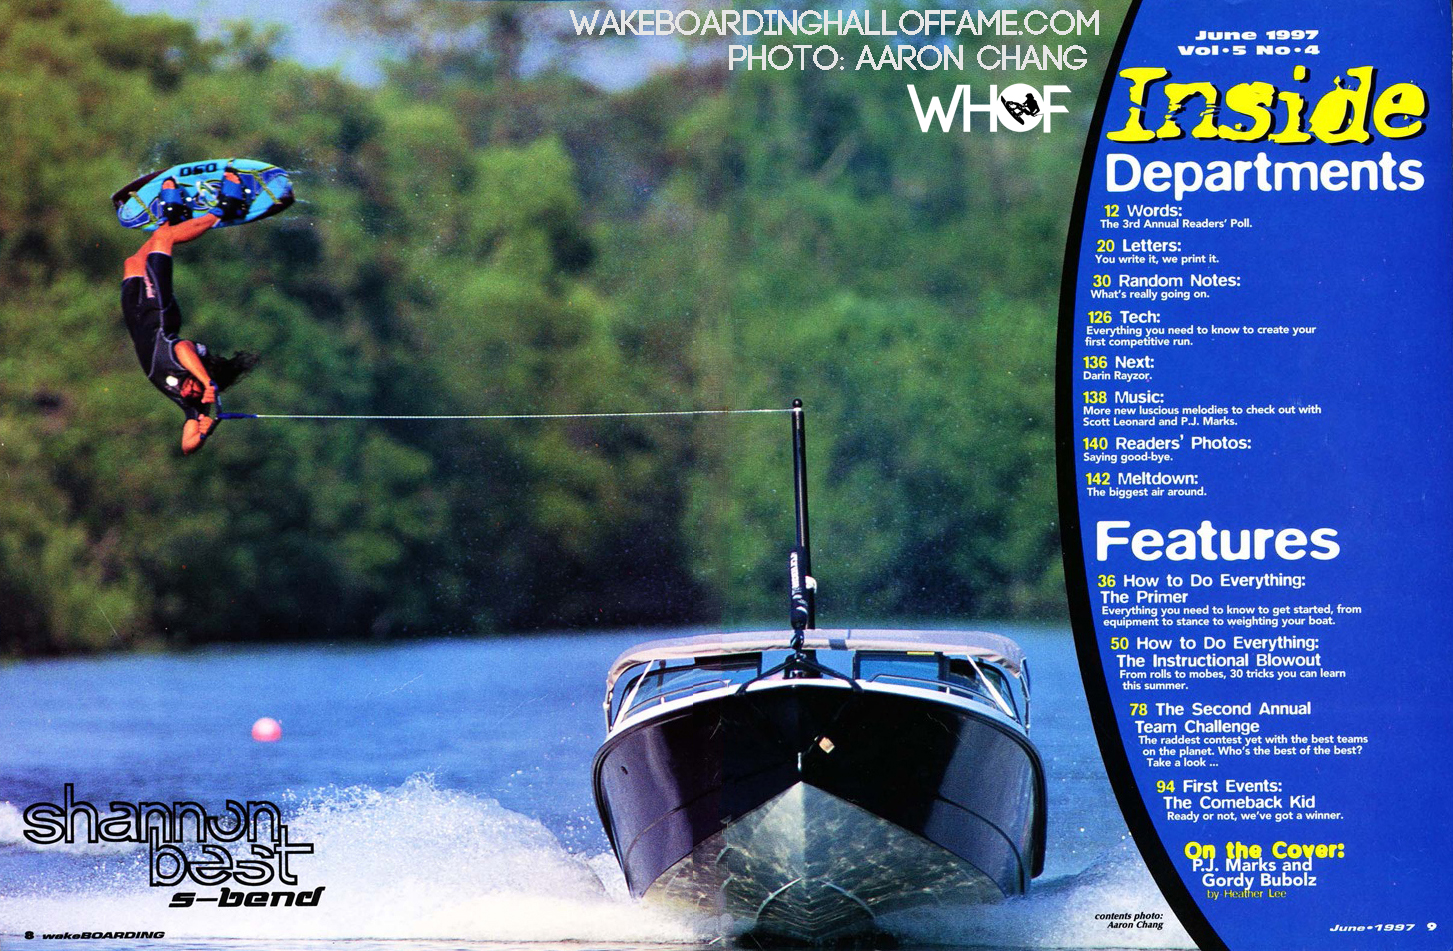 Shannon Best S-Bend wakeboarding magazine feature